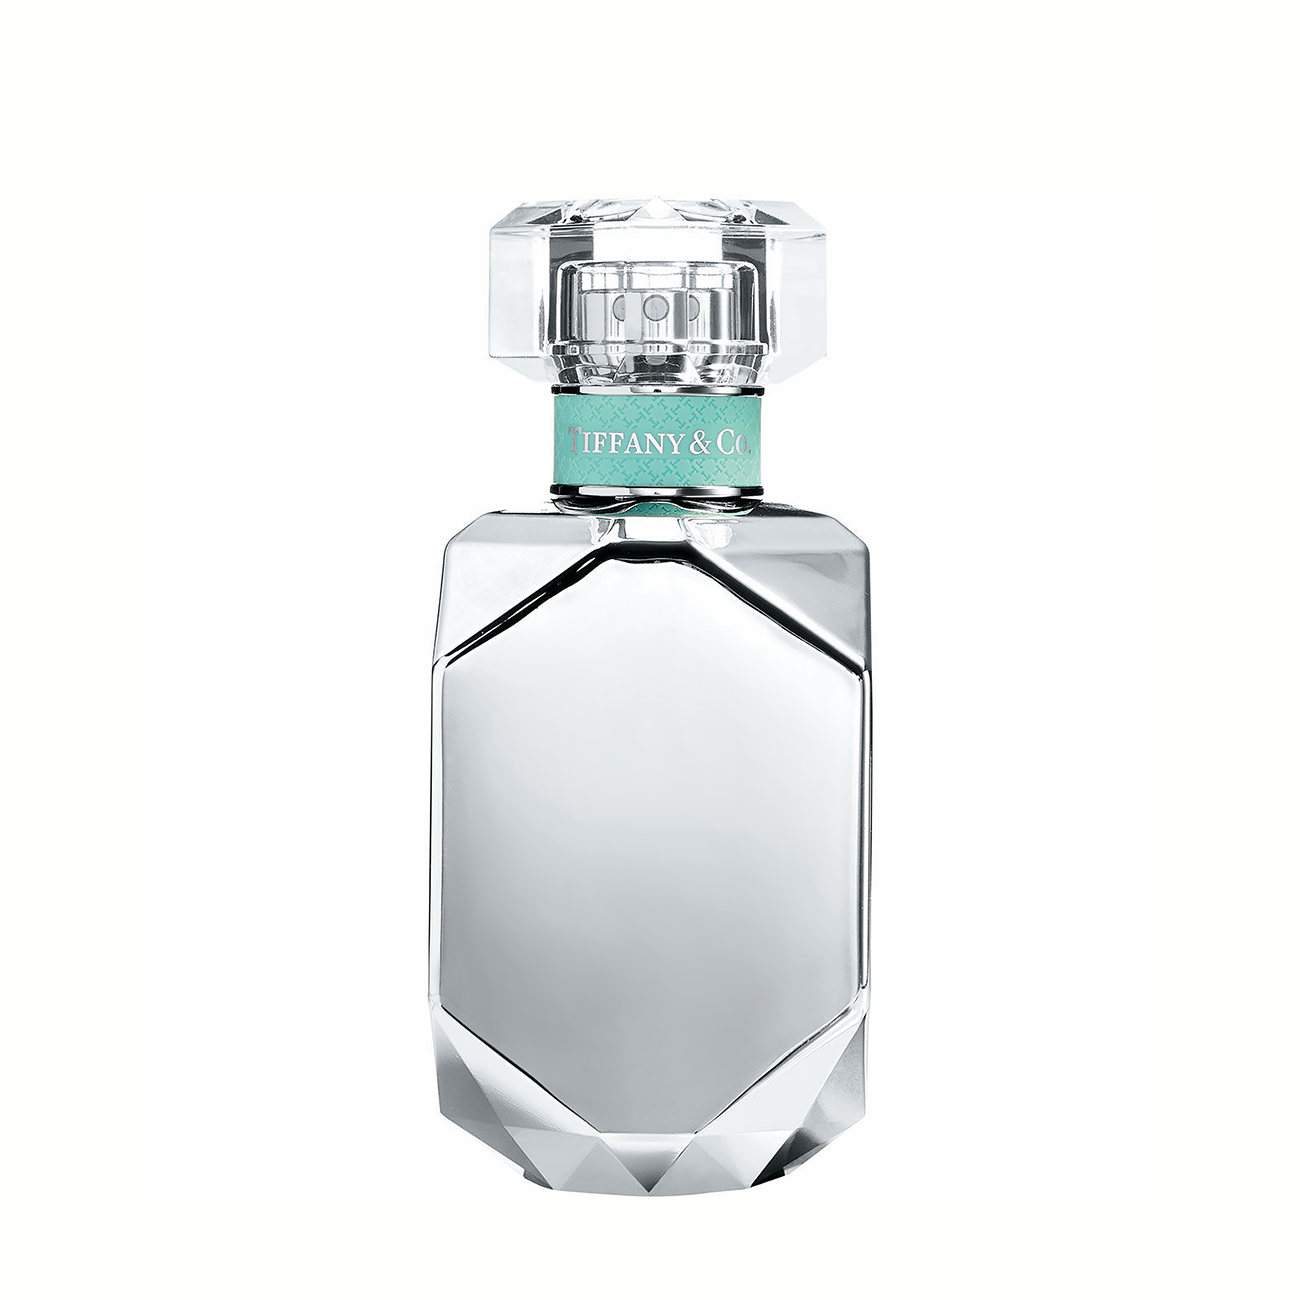 Tiffany & Co. Limited Edition 50ml imagine